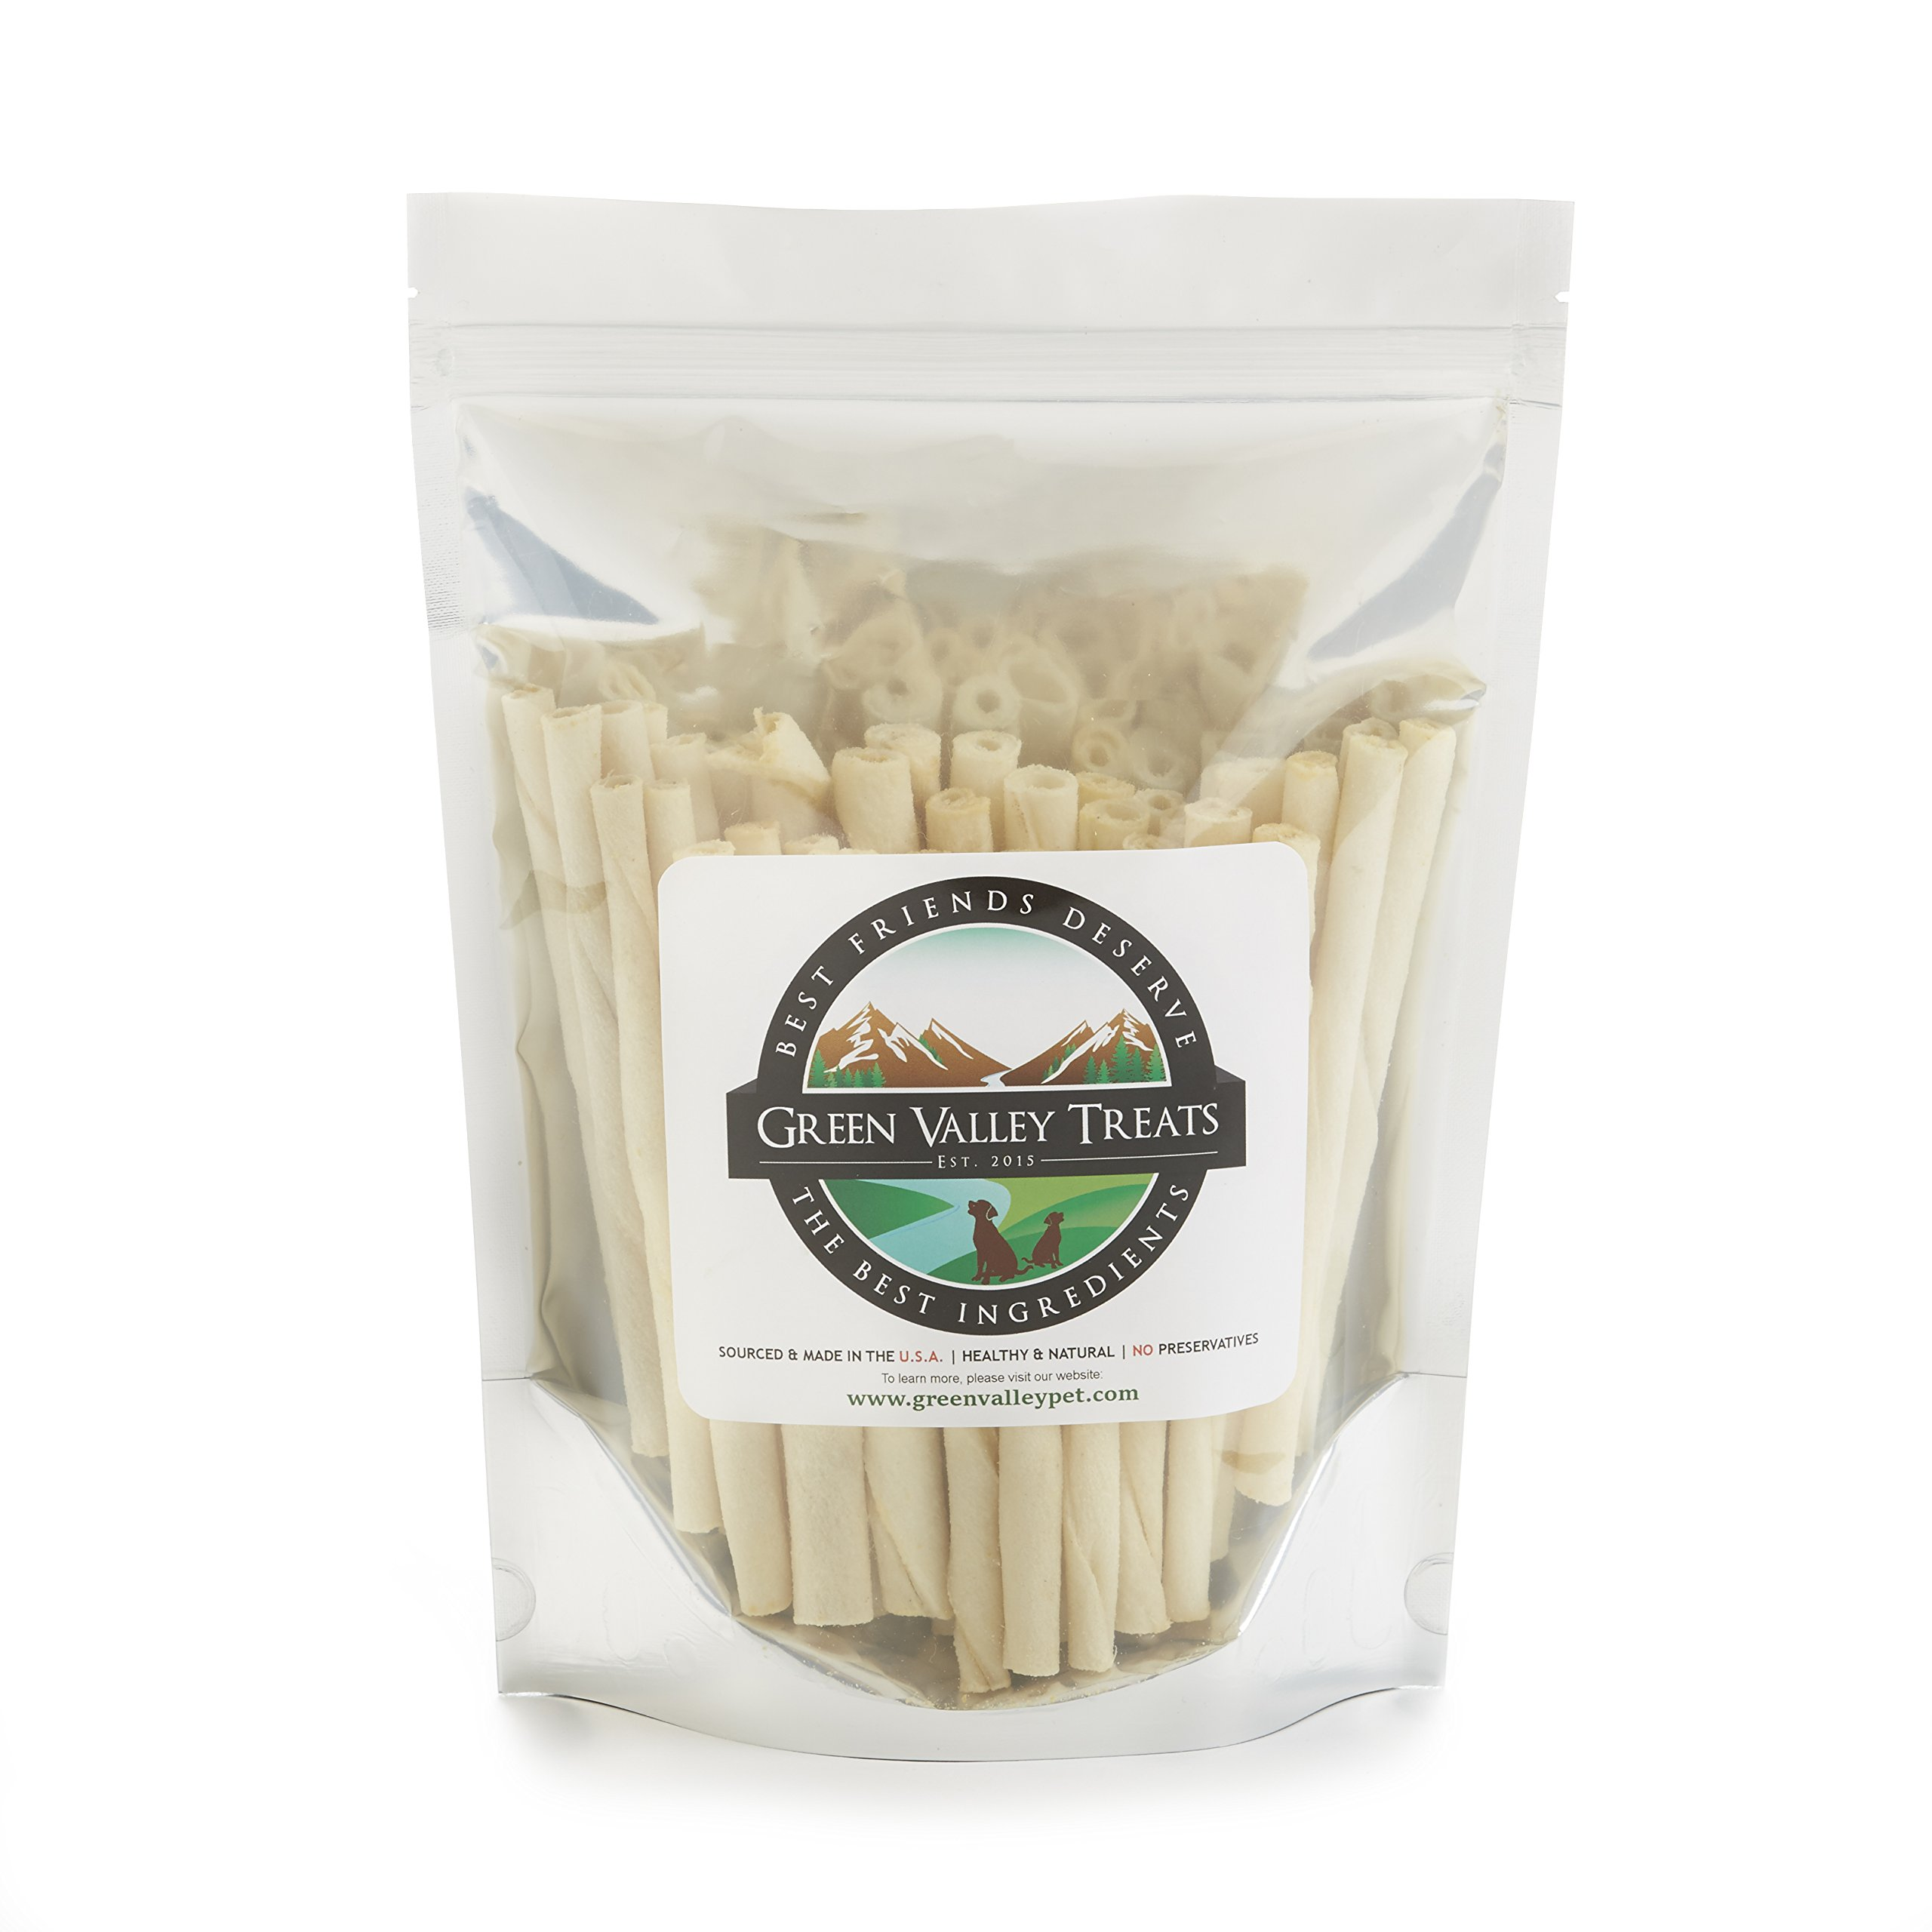 Green Valley Treats American Rawhide Sticks for Toy Dogs, 2.5 inch All Natural Twists Made in USA Only (30 Count)